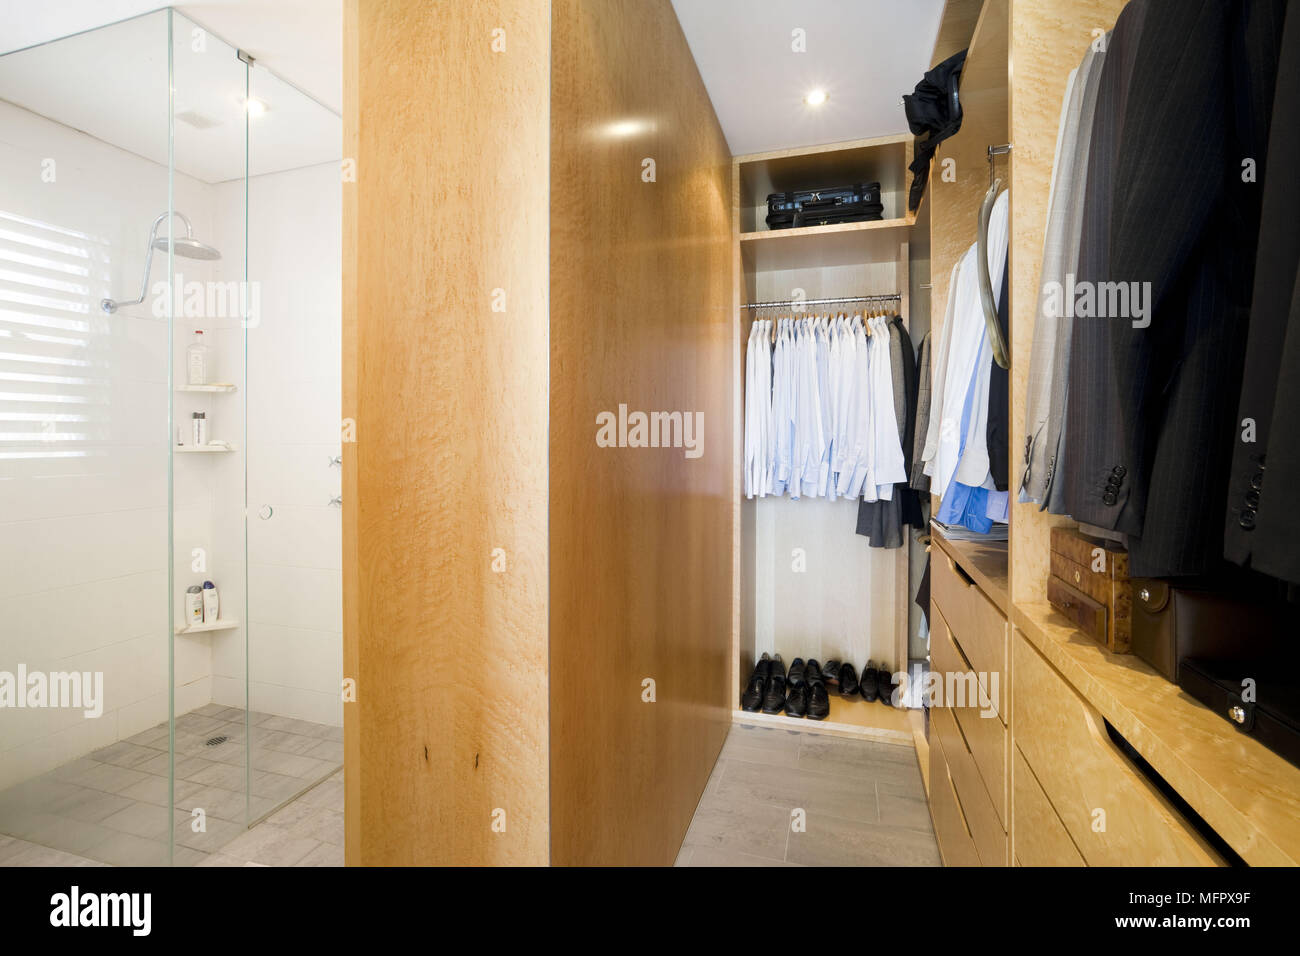 Shower Cubicle Separated From Dressing Room By Wood Partition Wall